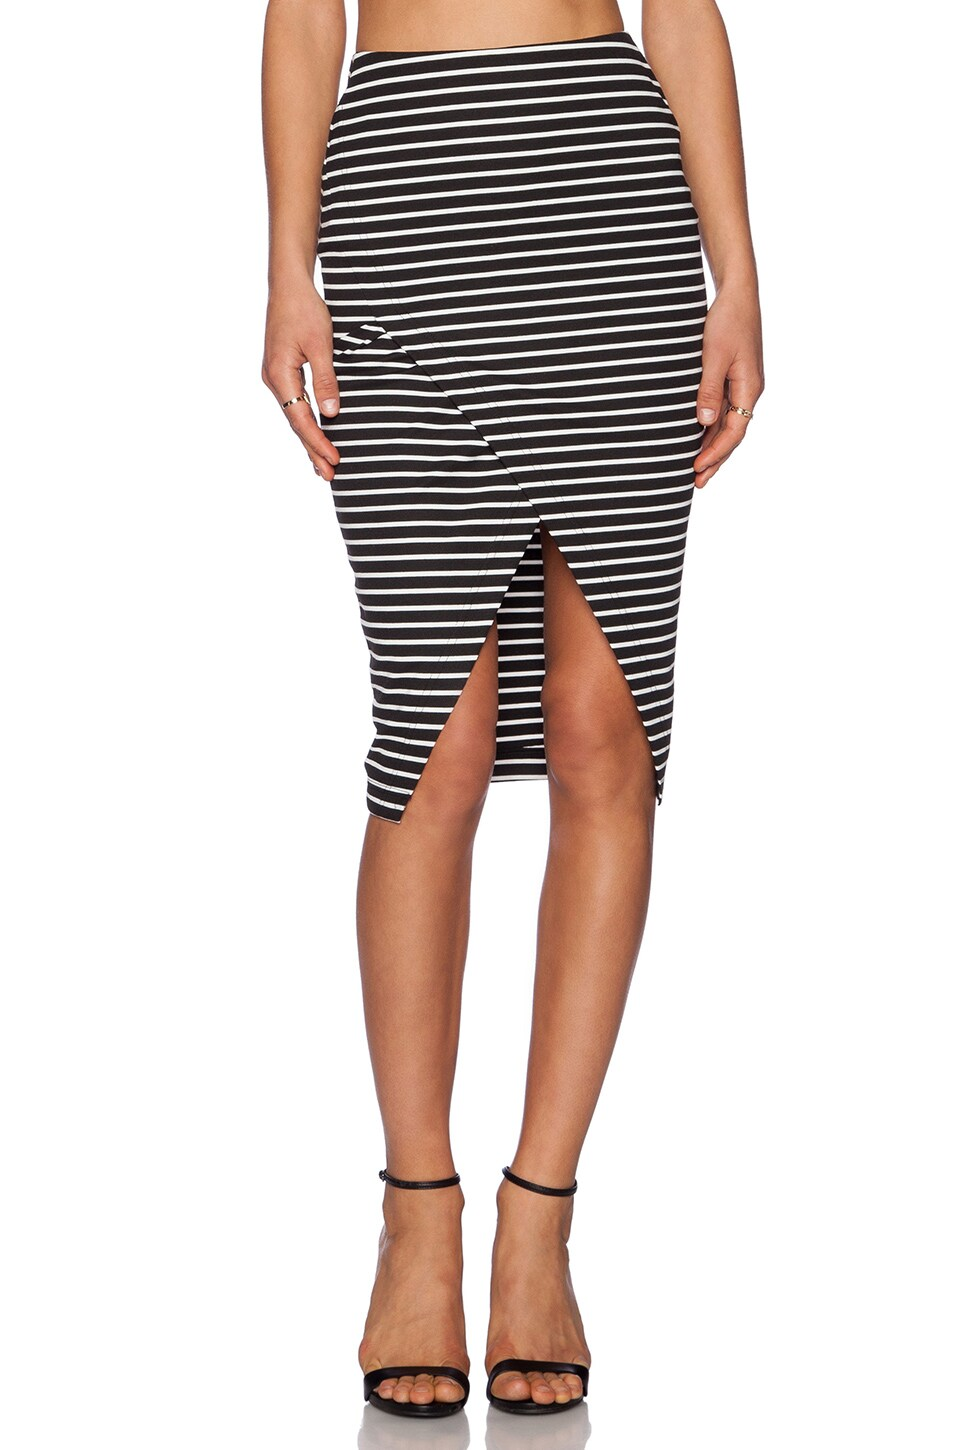 The Fifth Label Roadhouse skirt in Black & White Stripe | REVOLVE